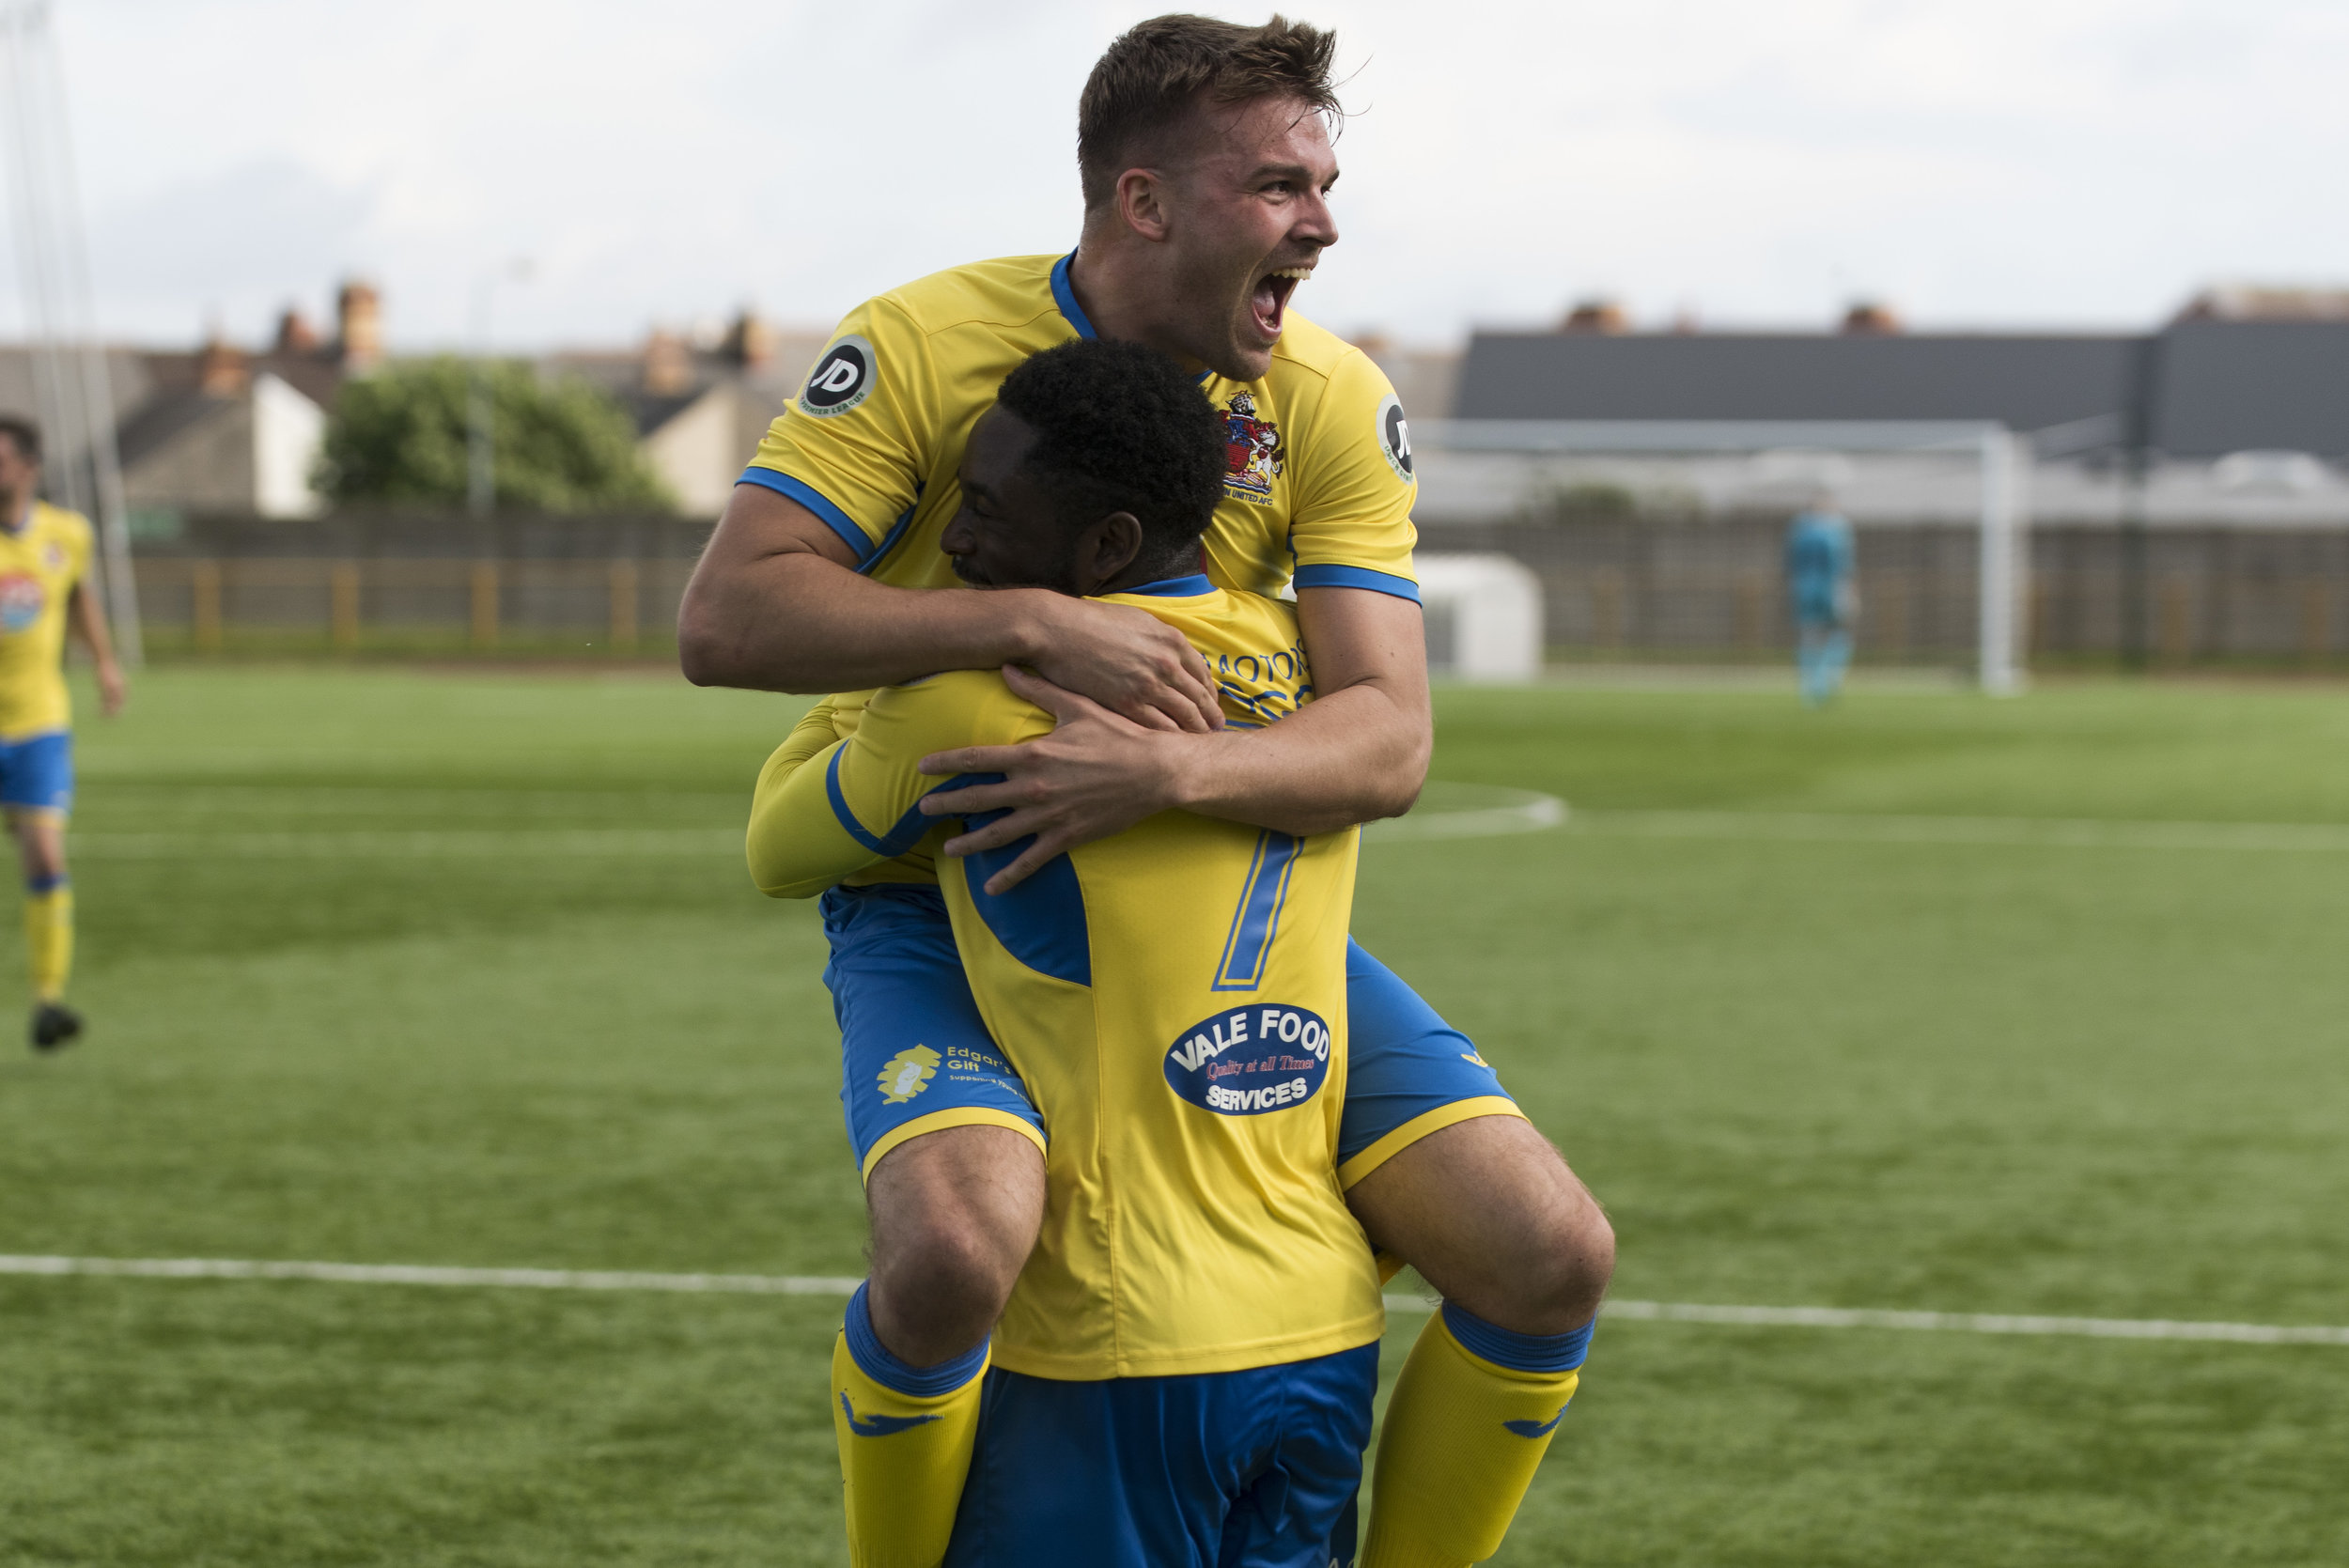 Man of the Match Luke Cooper celebrates with McLaggon after his second goal